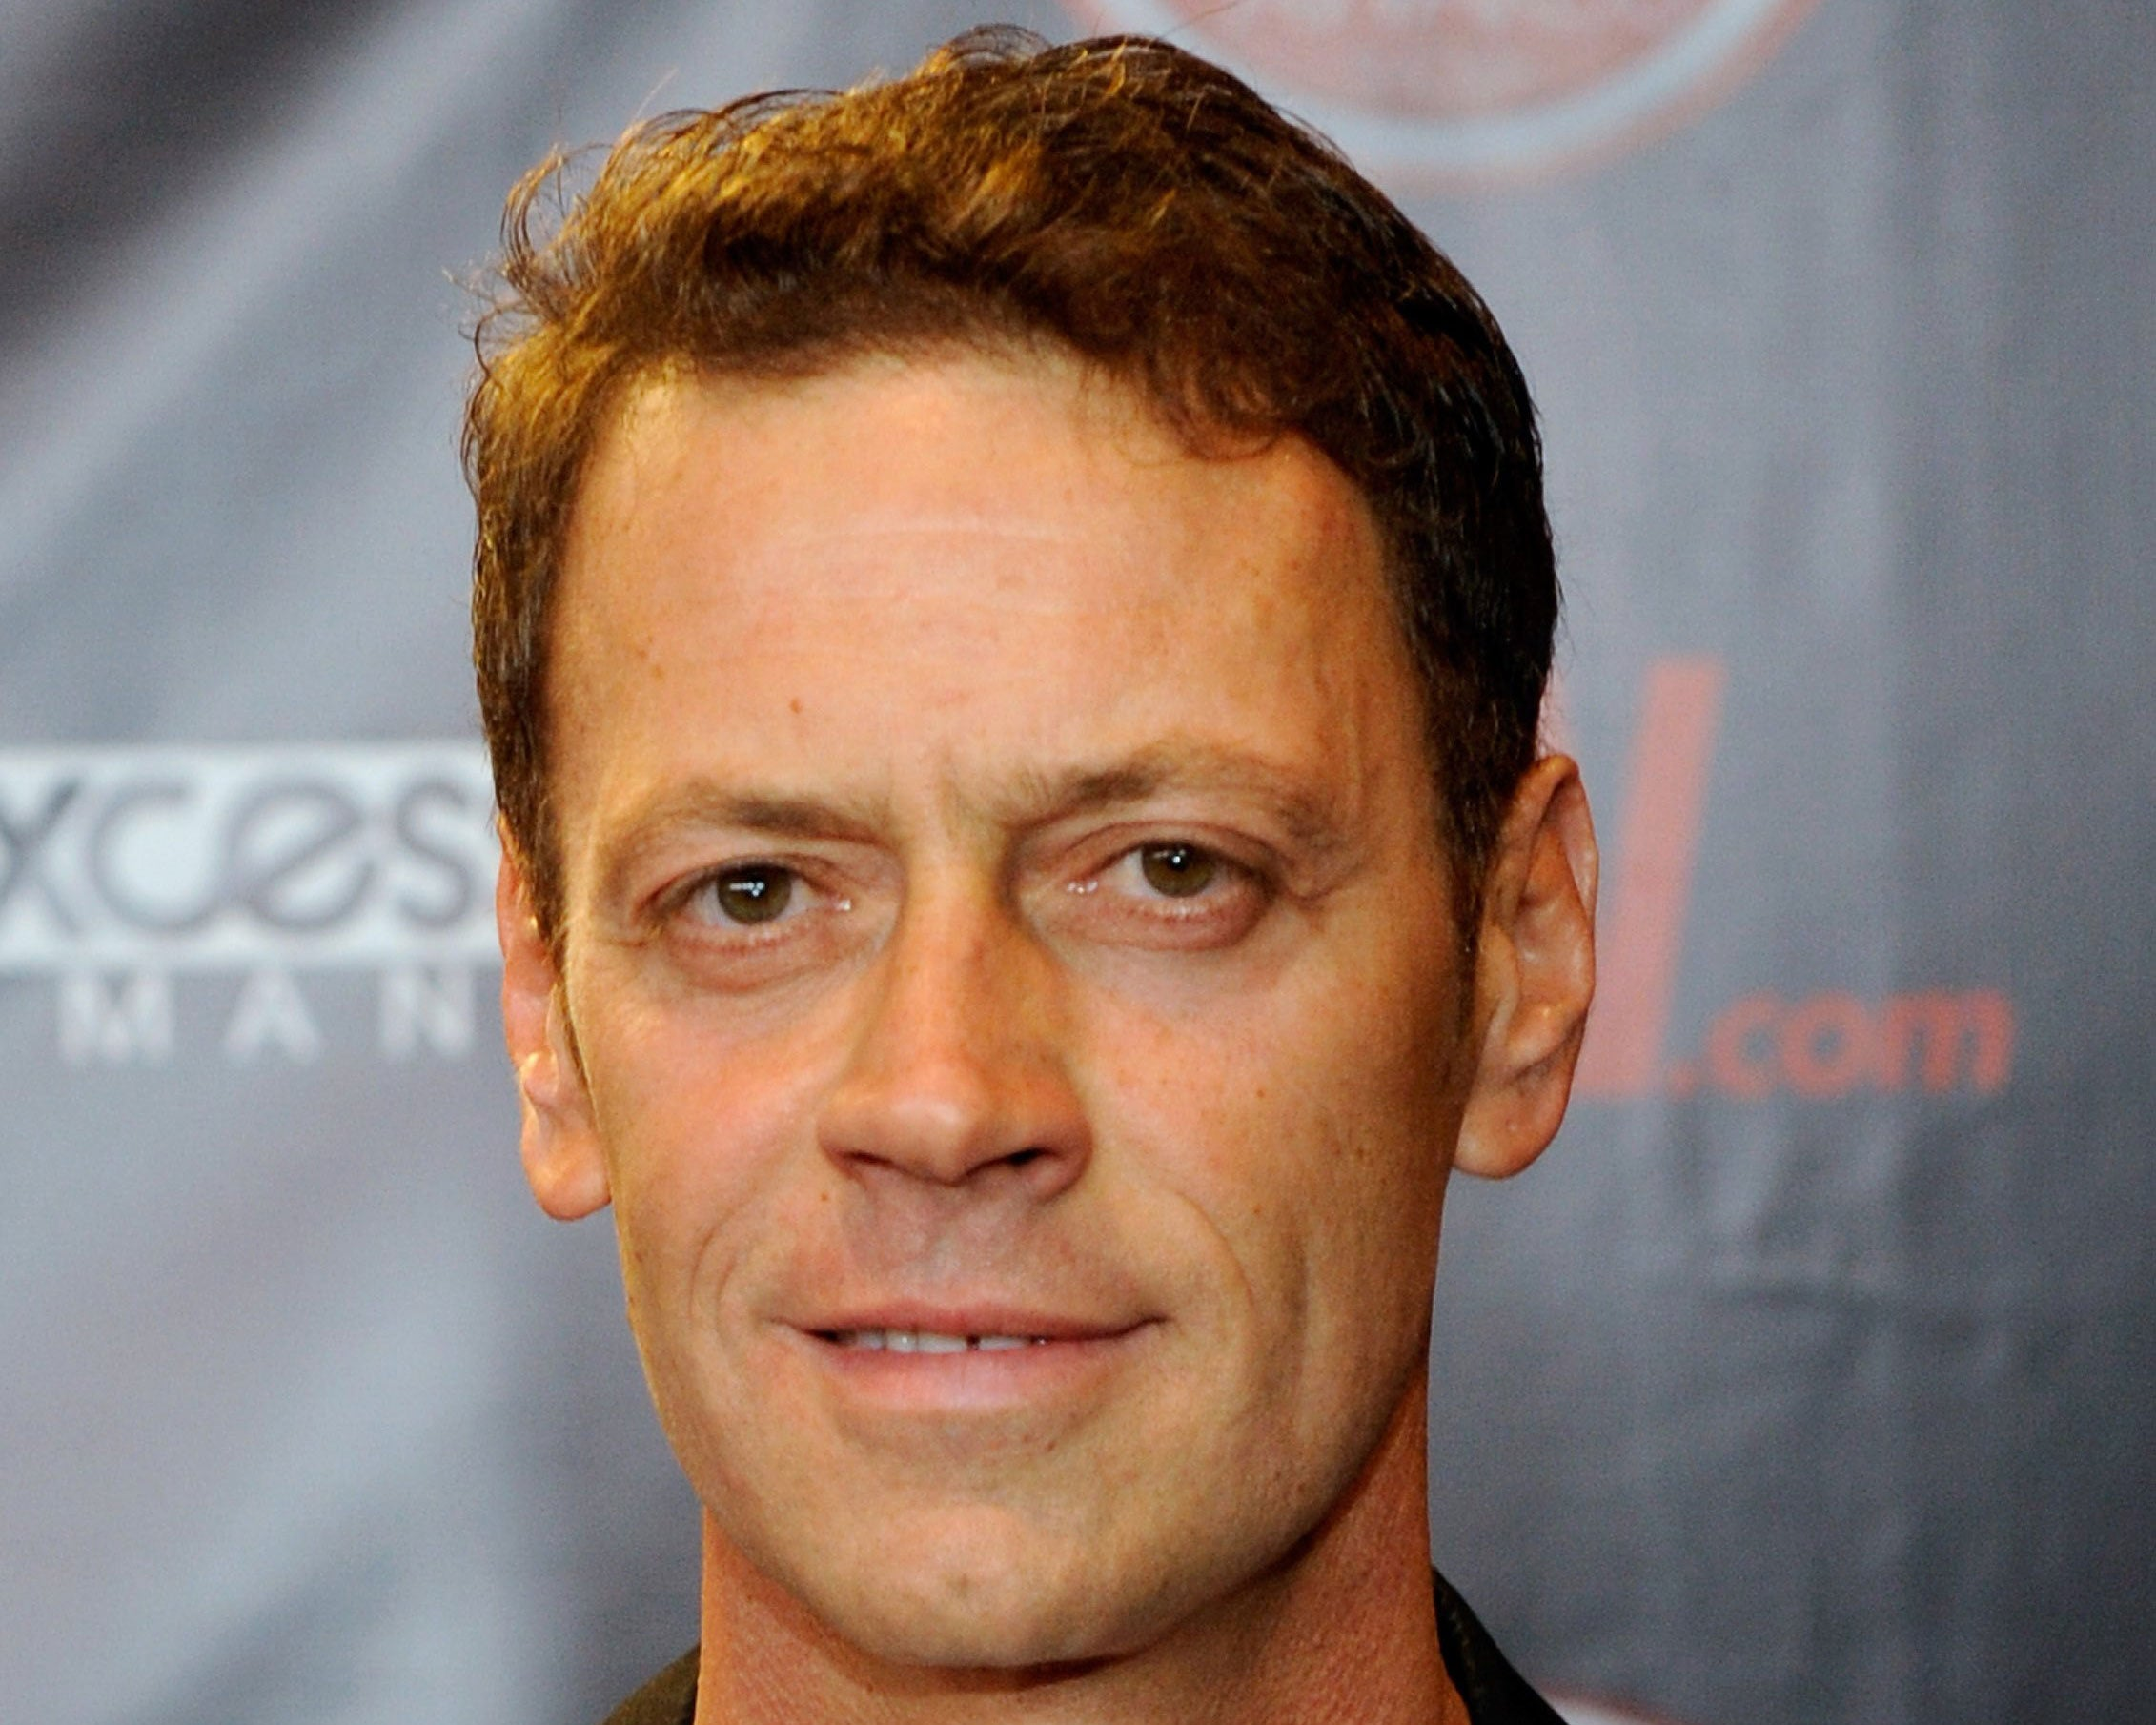 Thousands sign Italian porn actor Rocco Siffredi's petition ...